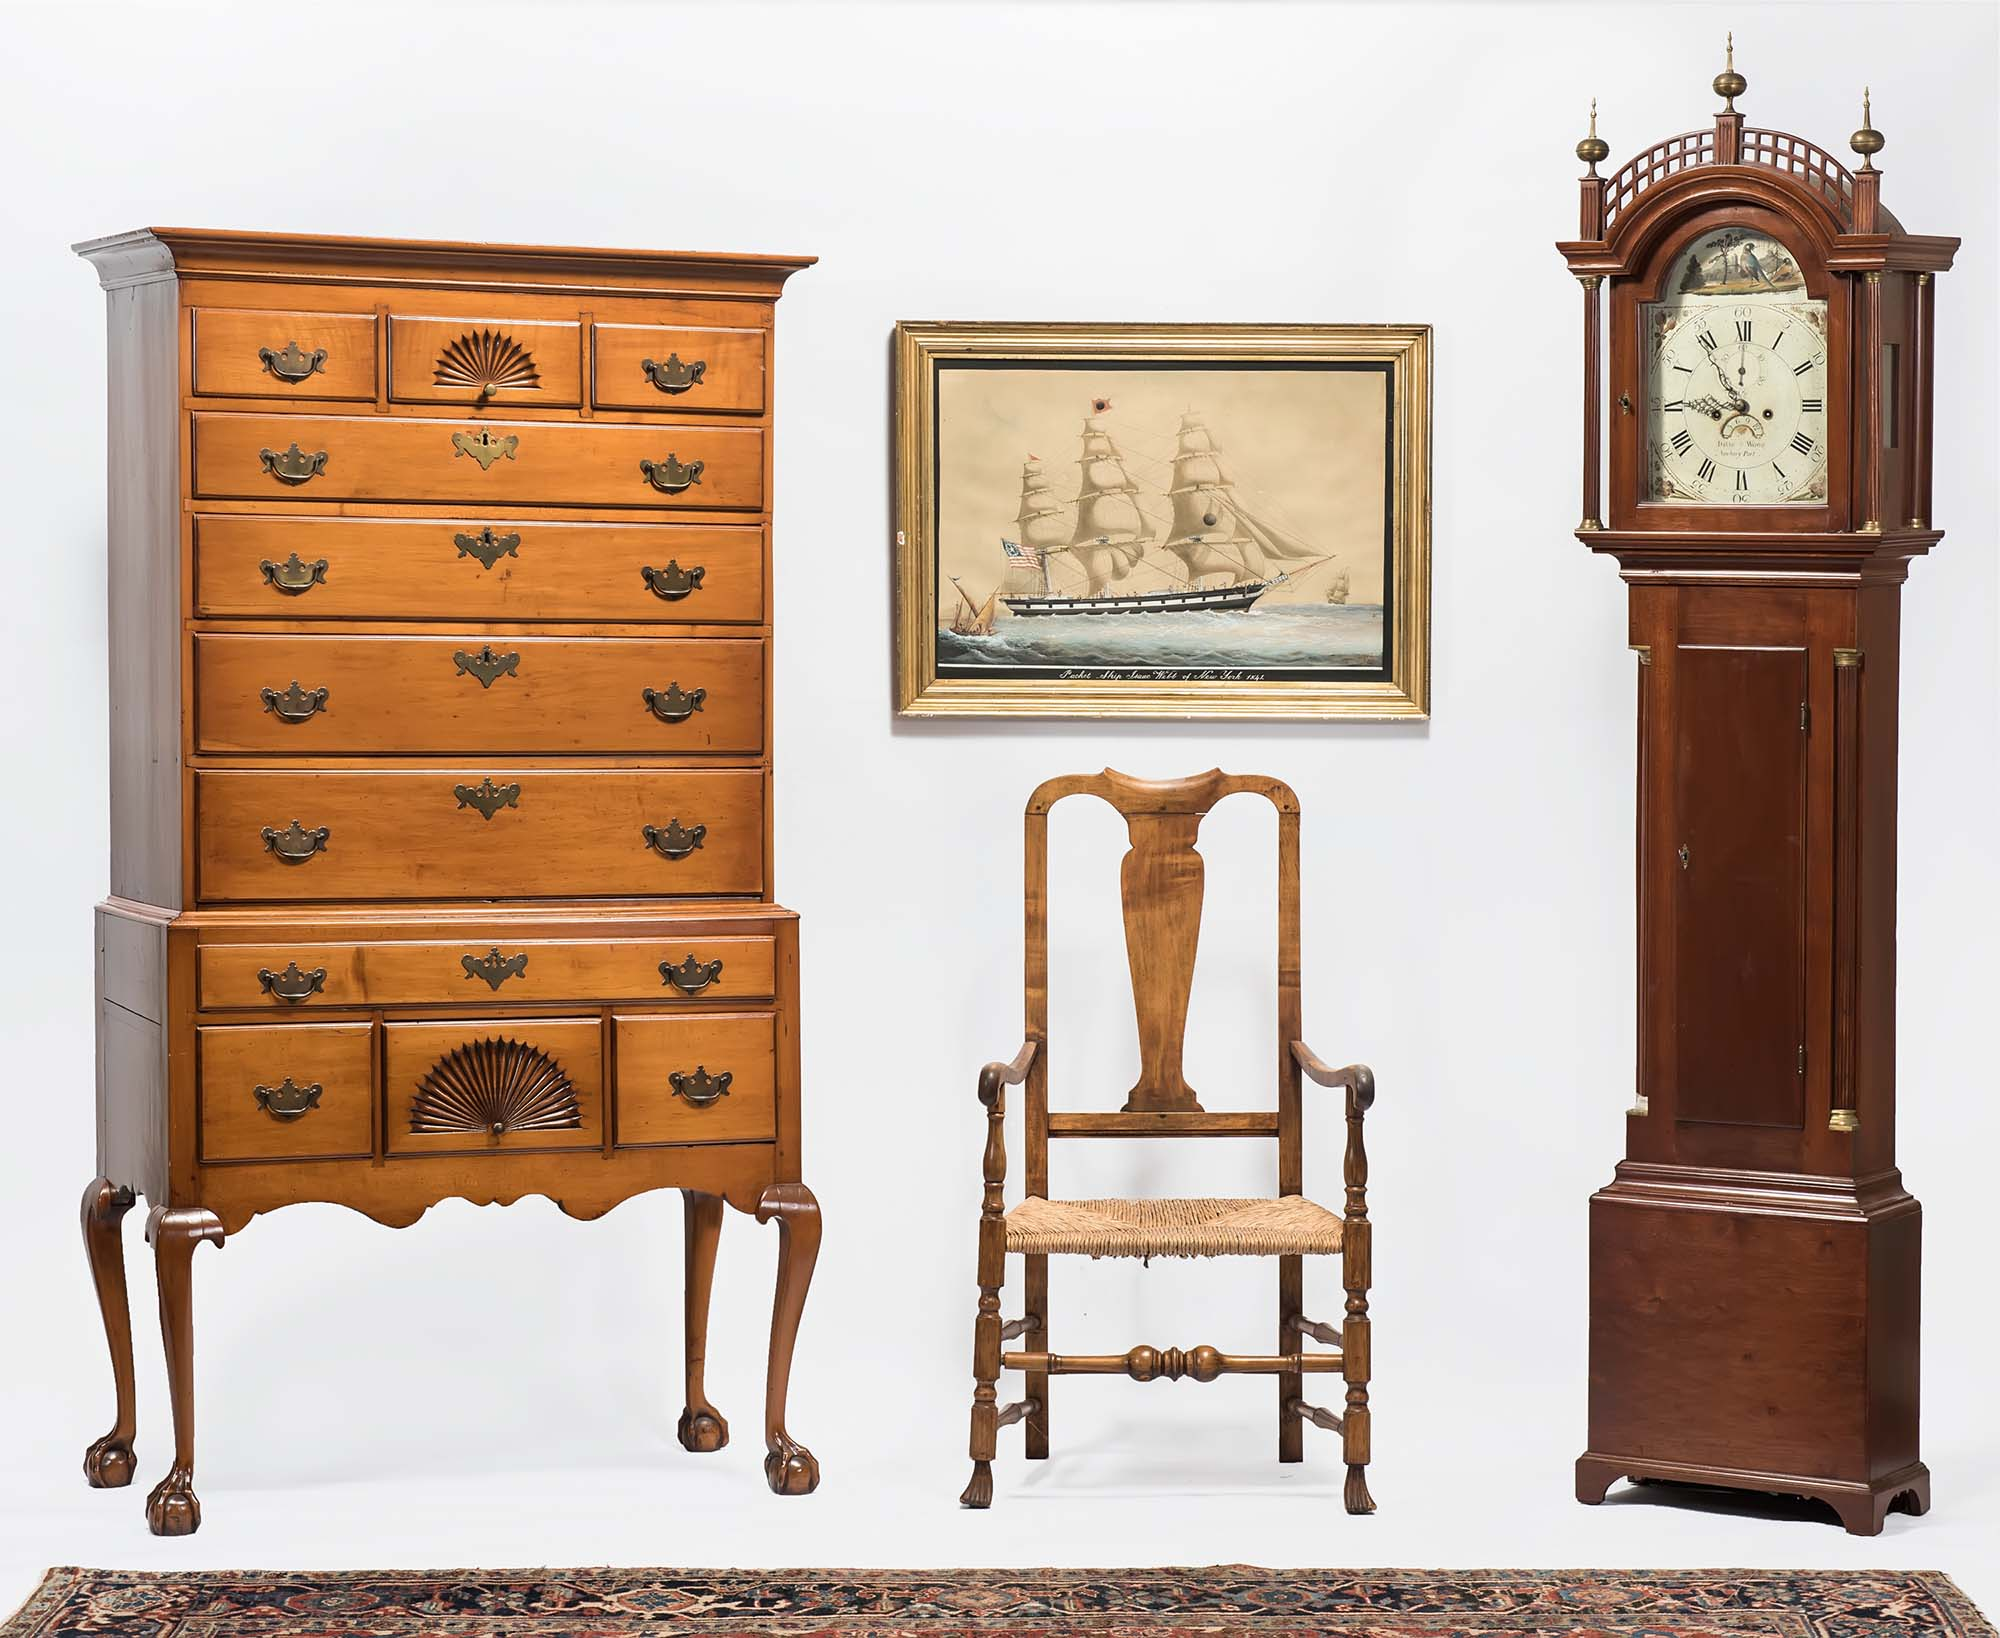 FURNITURE: 82 In. NH Maple Highboy On Ball And Claw Feet With Fan Carved  Center Drawers. 82 In. David Wood, Newburyport ...